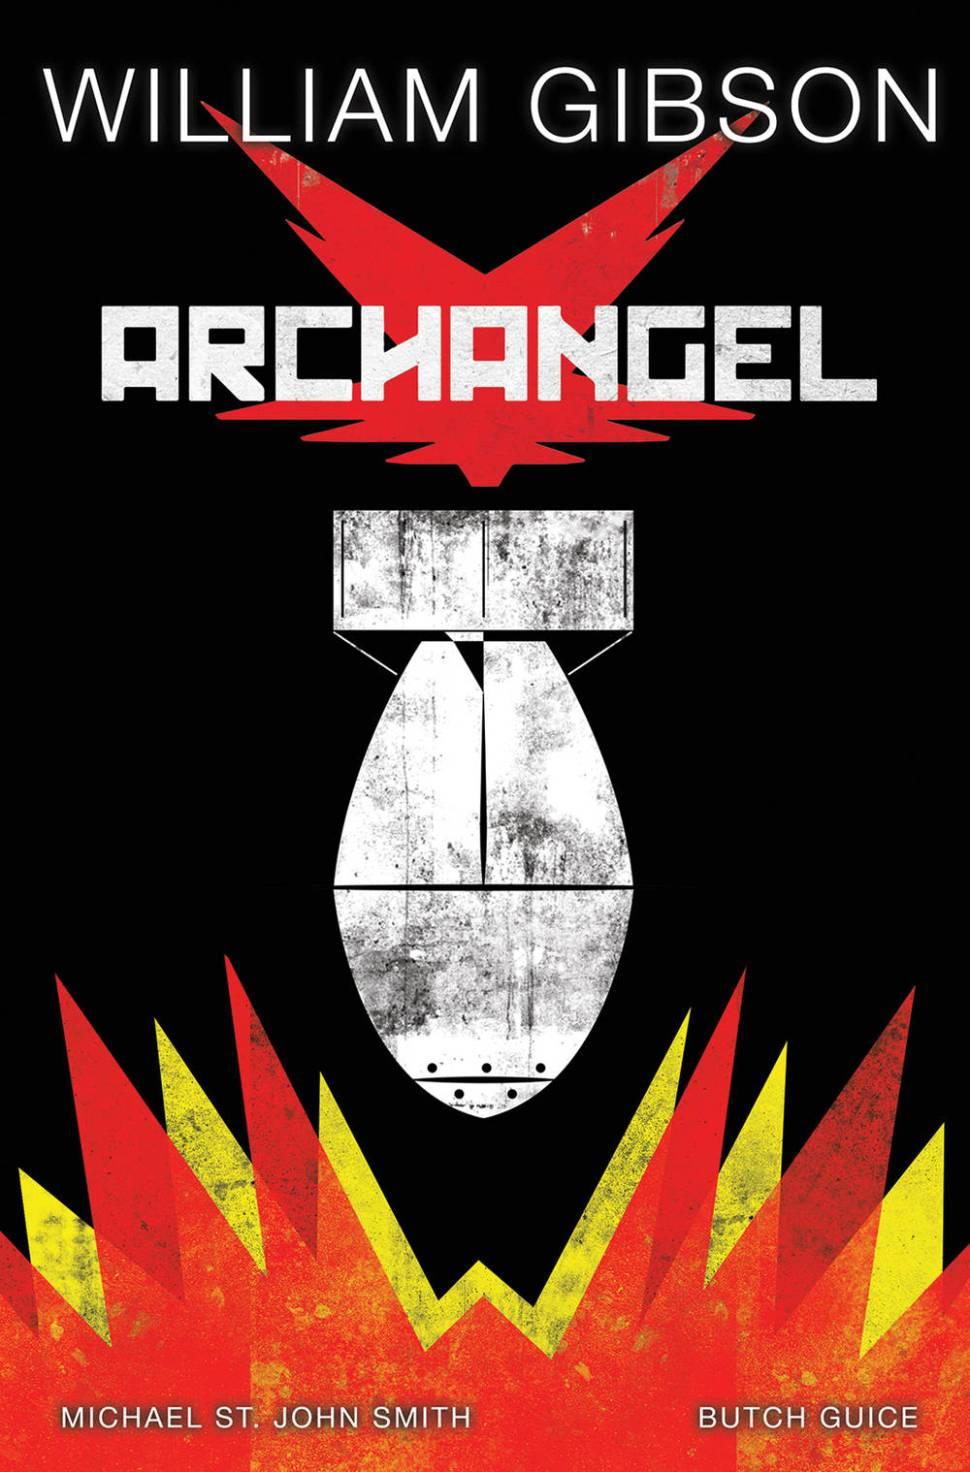 Winning Apocalyptic Jackpot >> William Gibson S Archangel A Graphic Story Of The Unfolding Jackpot